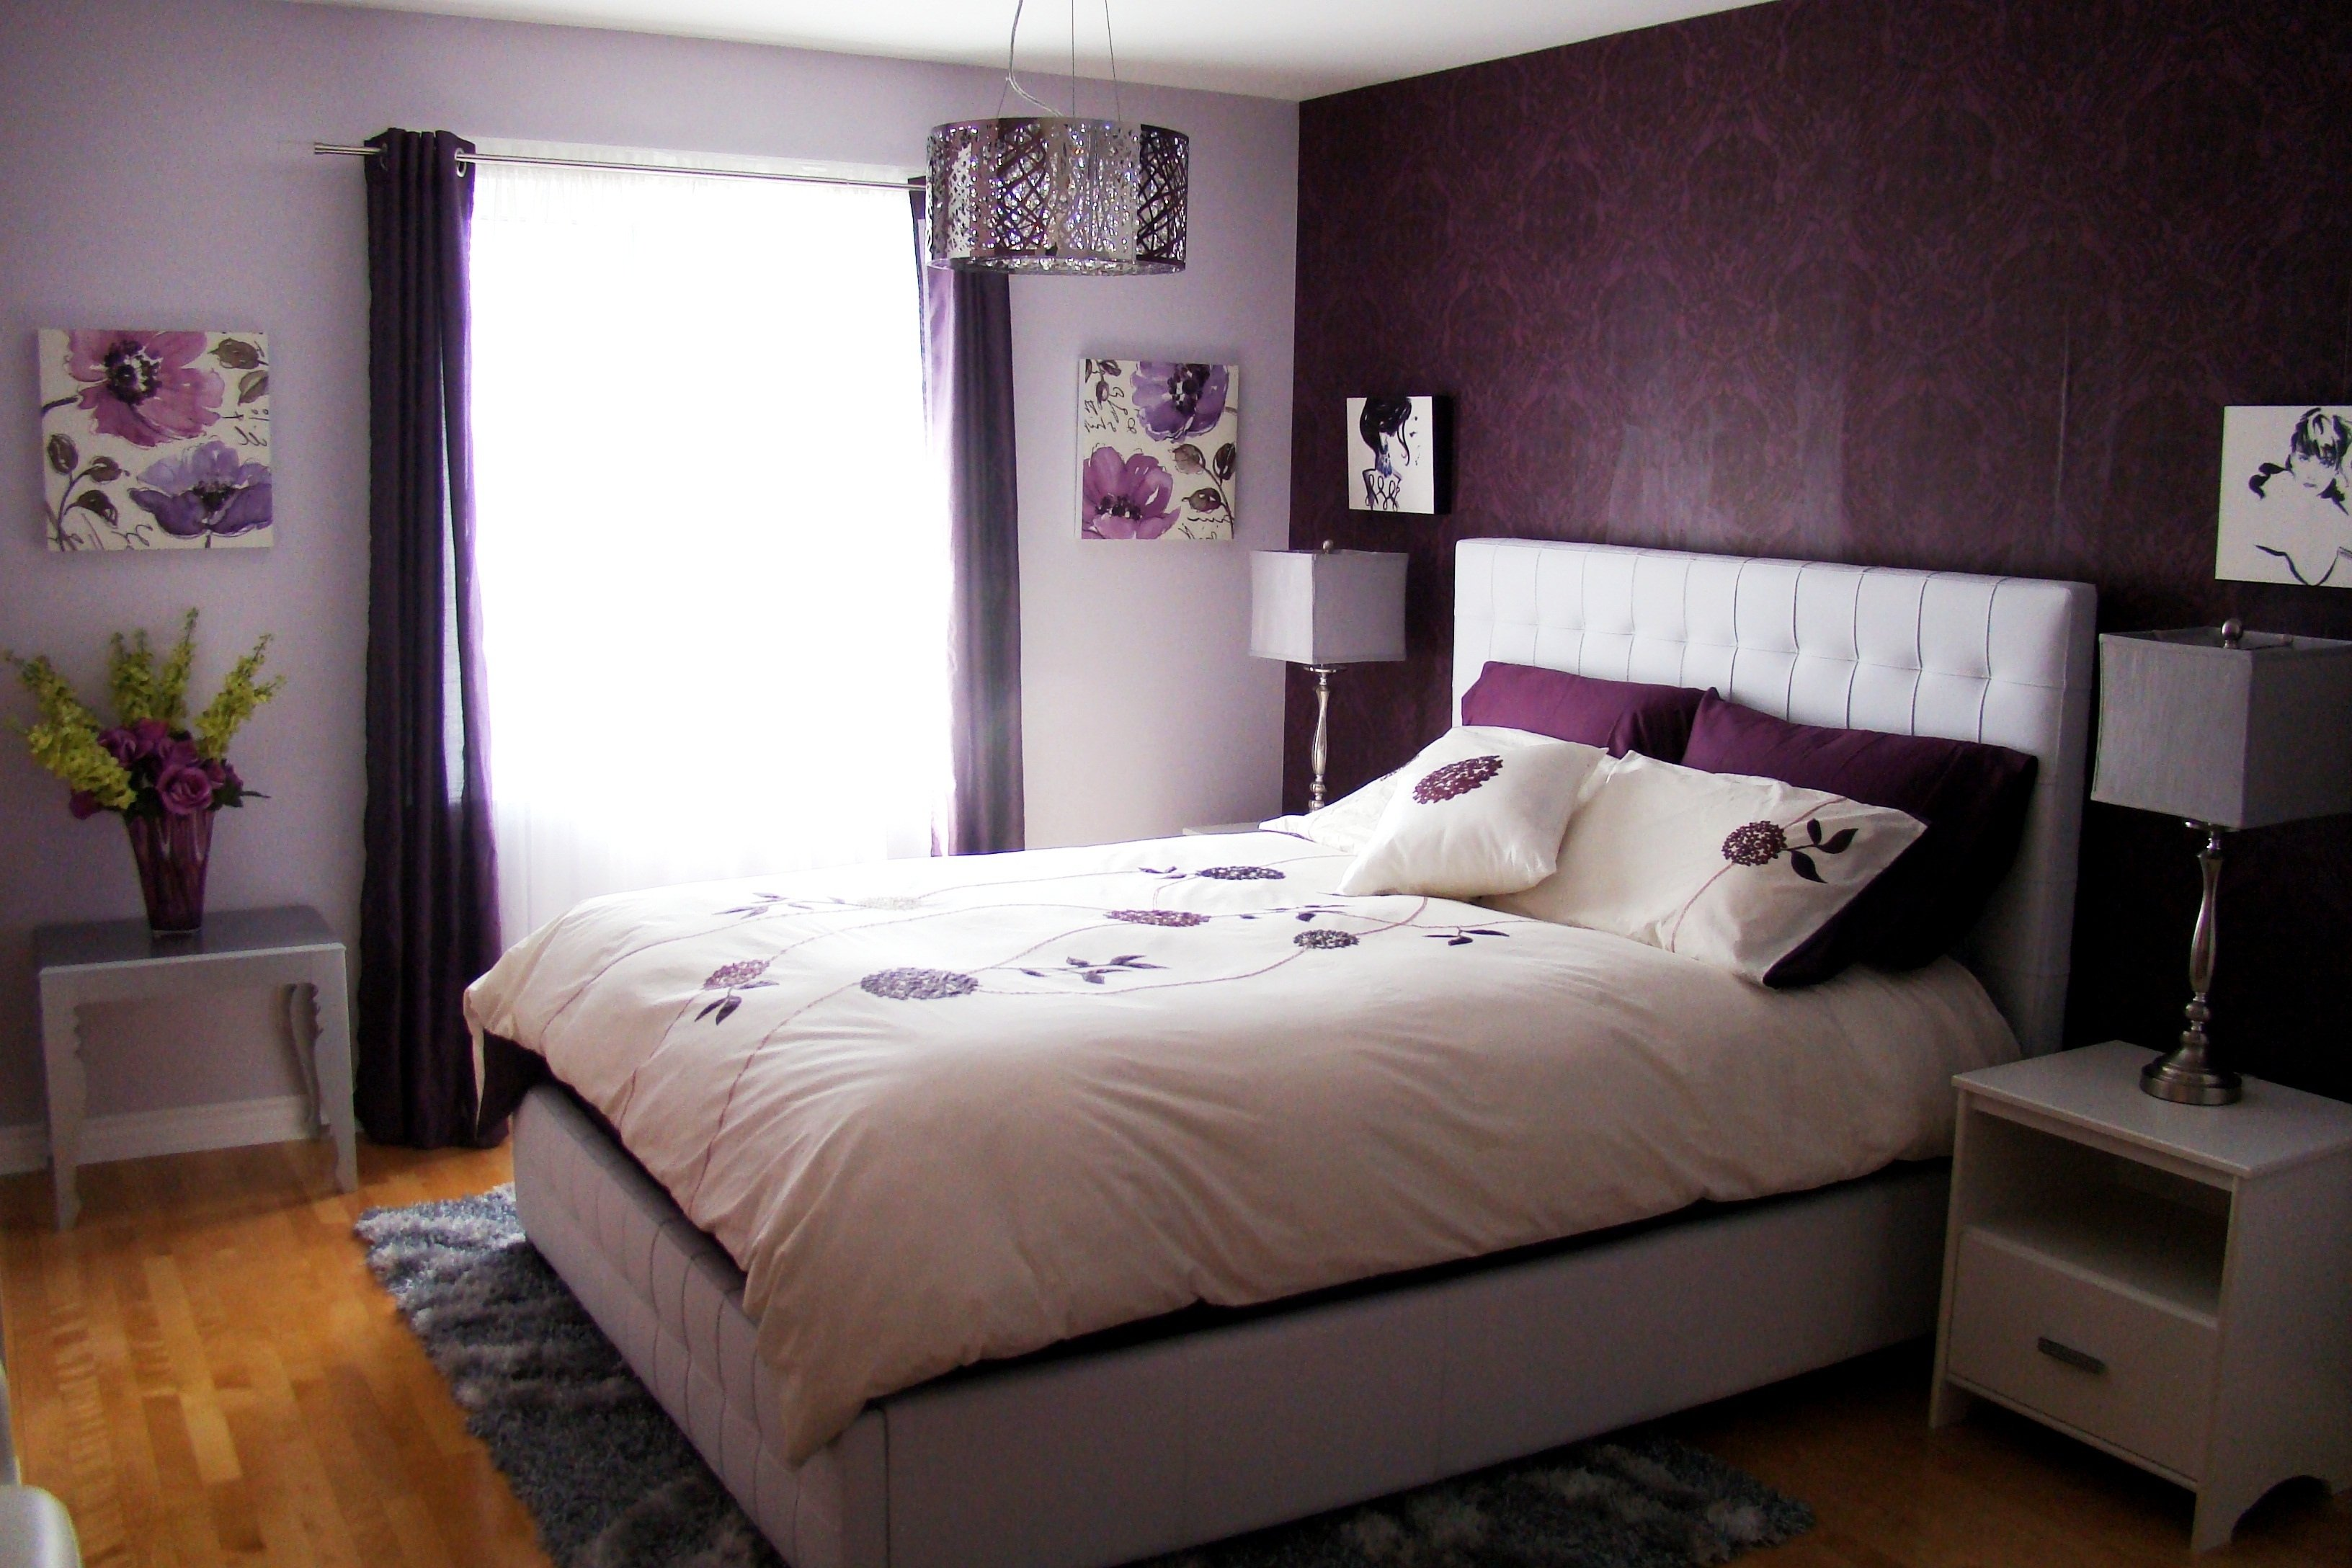 10 Stylish Purple Bedroom Ideas For Adults purple bedroom ideas cool idaes decobizz 2020